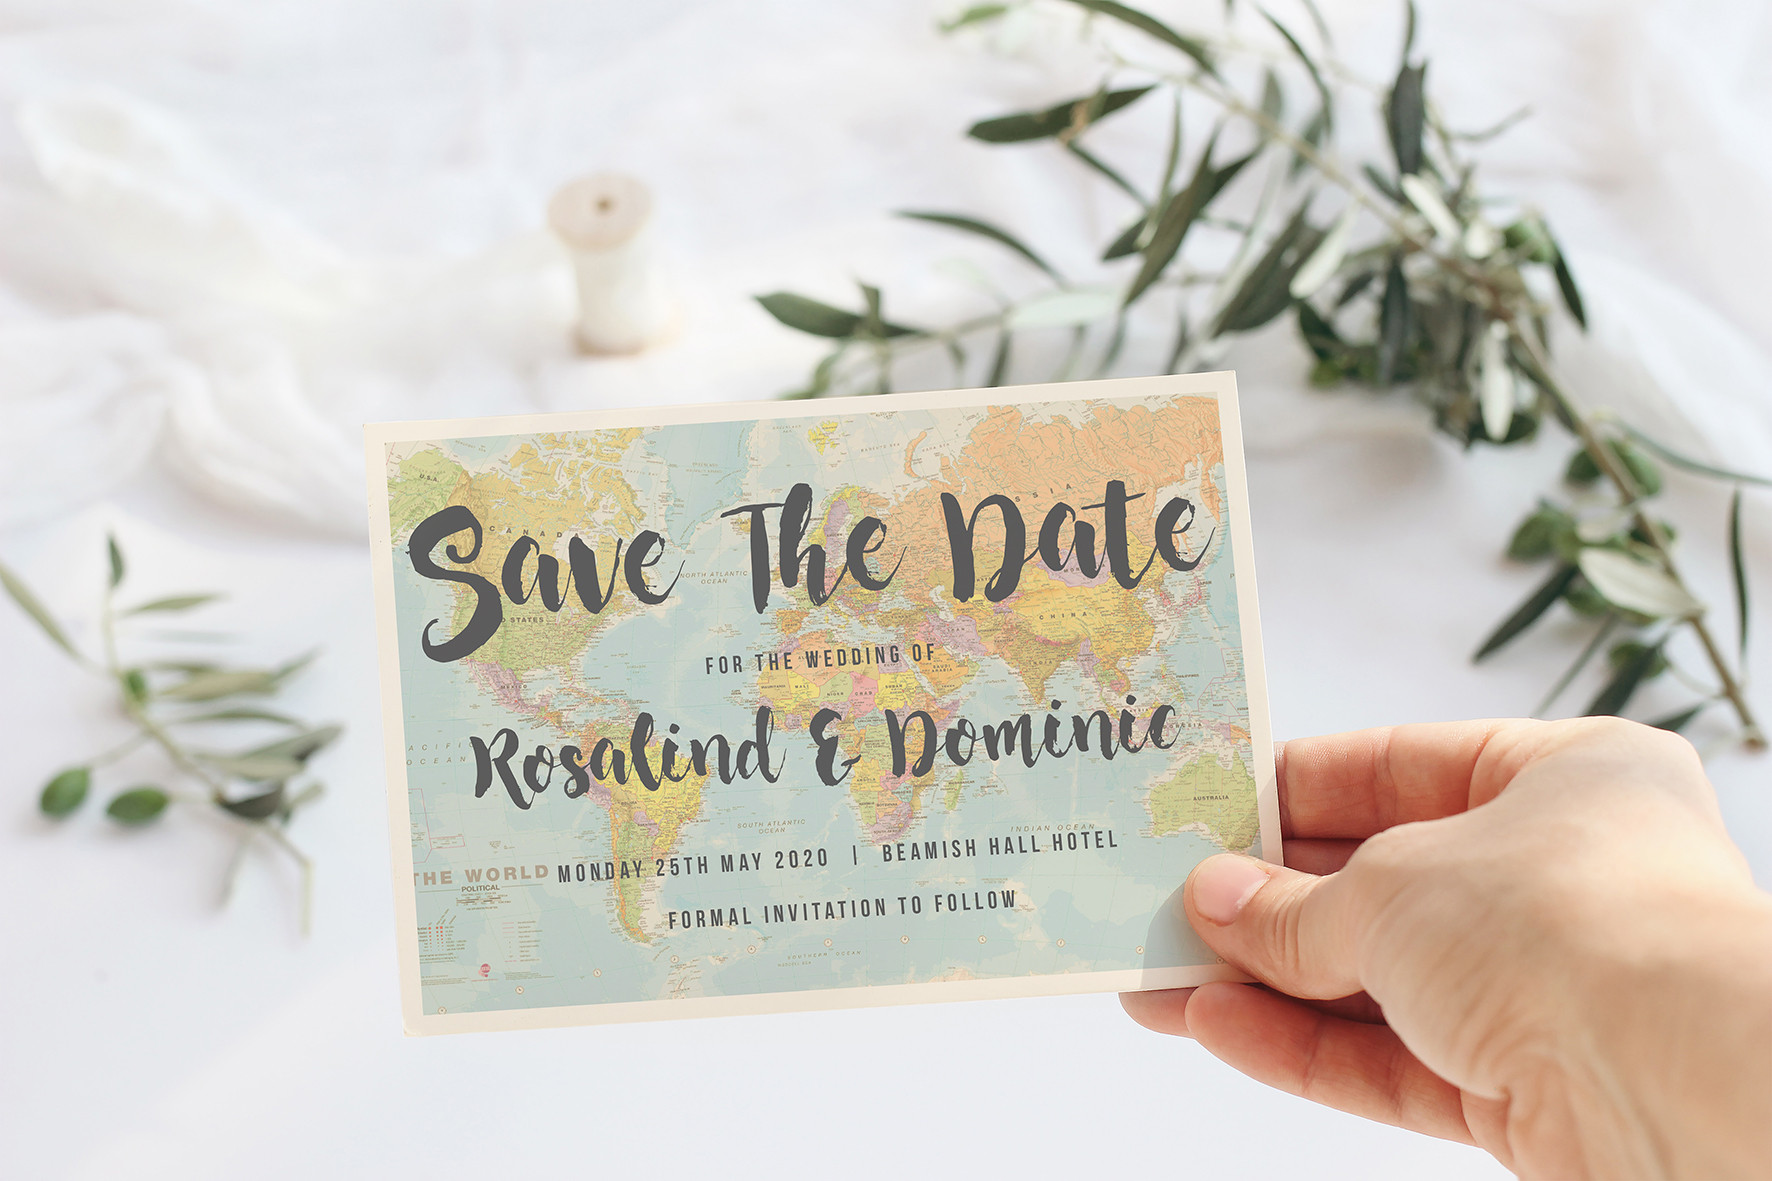 Save The Date 1.jpg